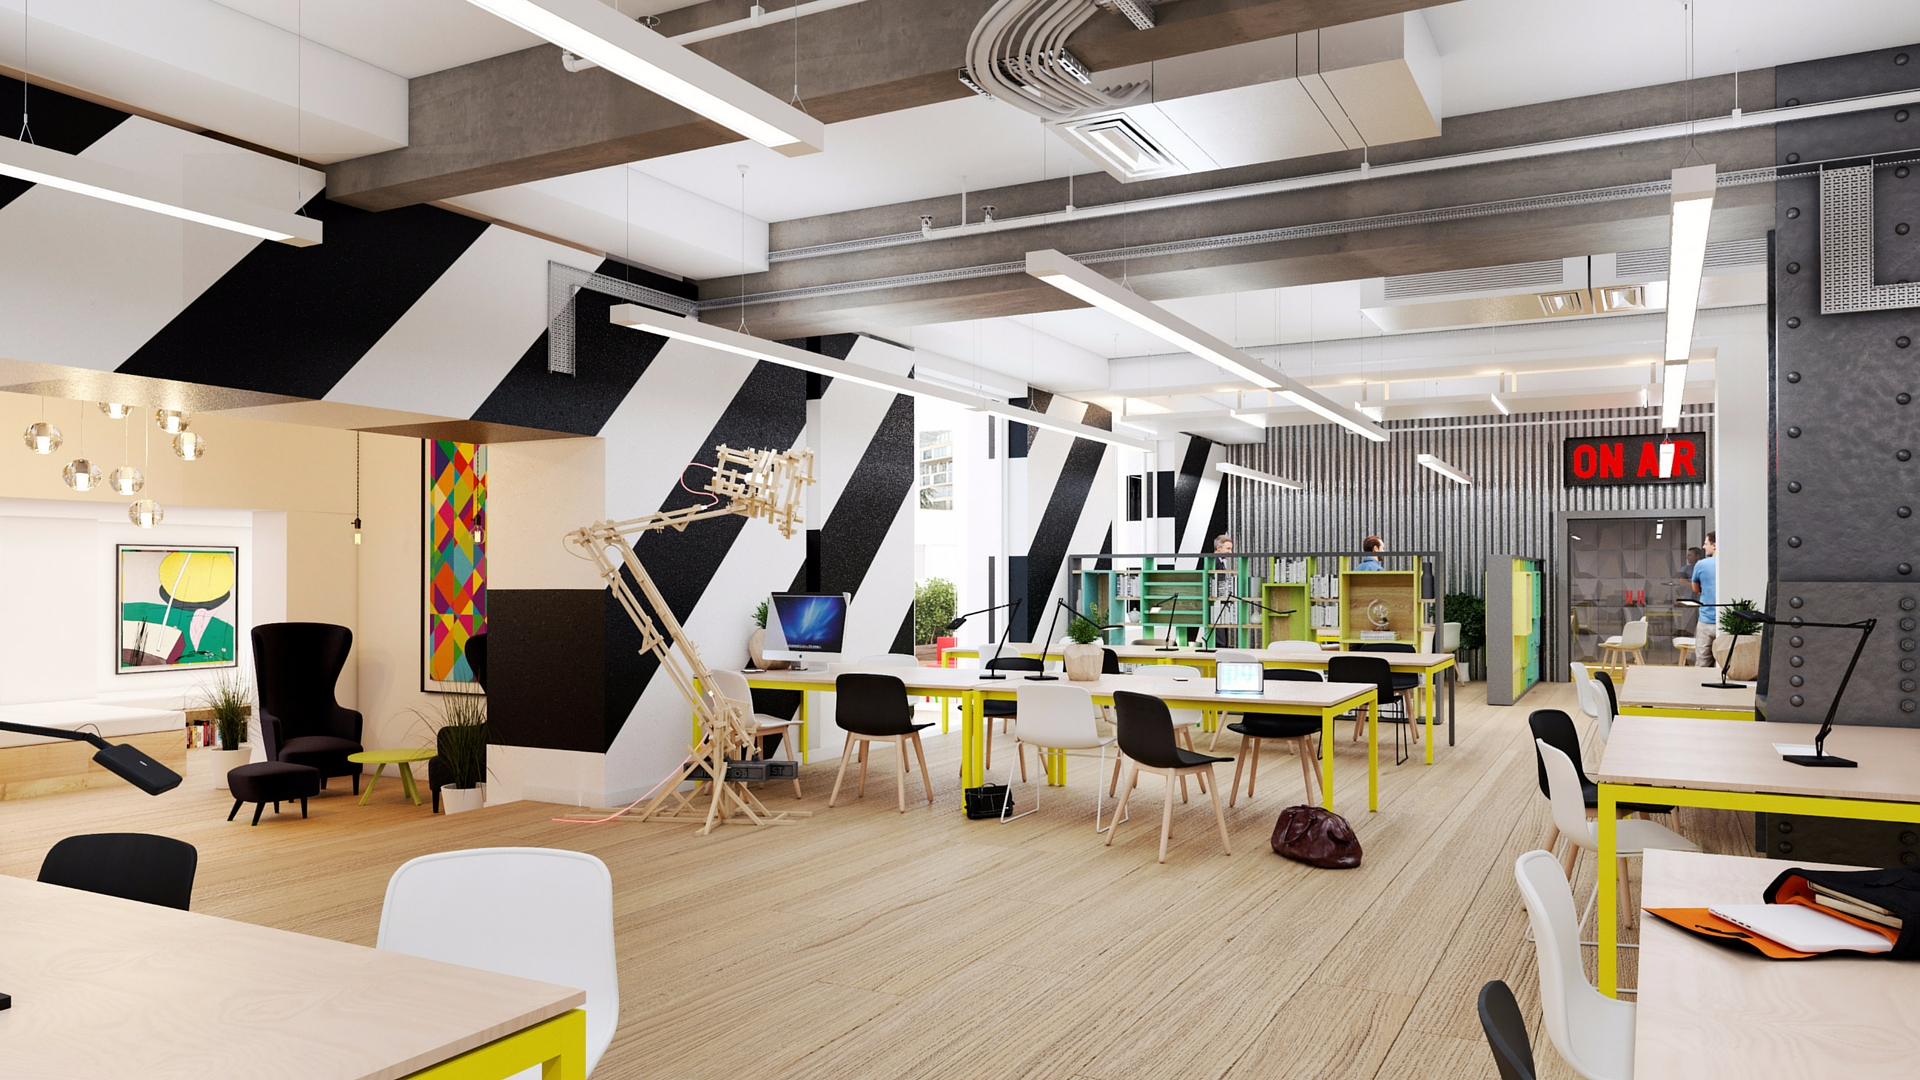 Huckletree shoreditch offices startups innovation Coworking space design ideas